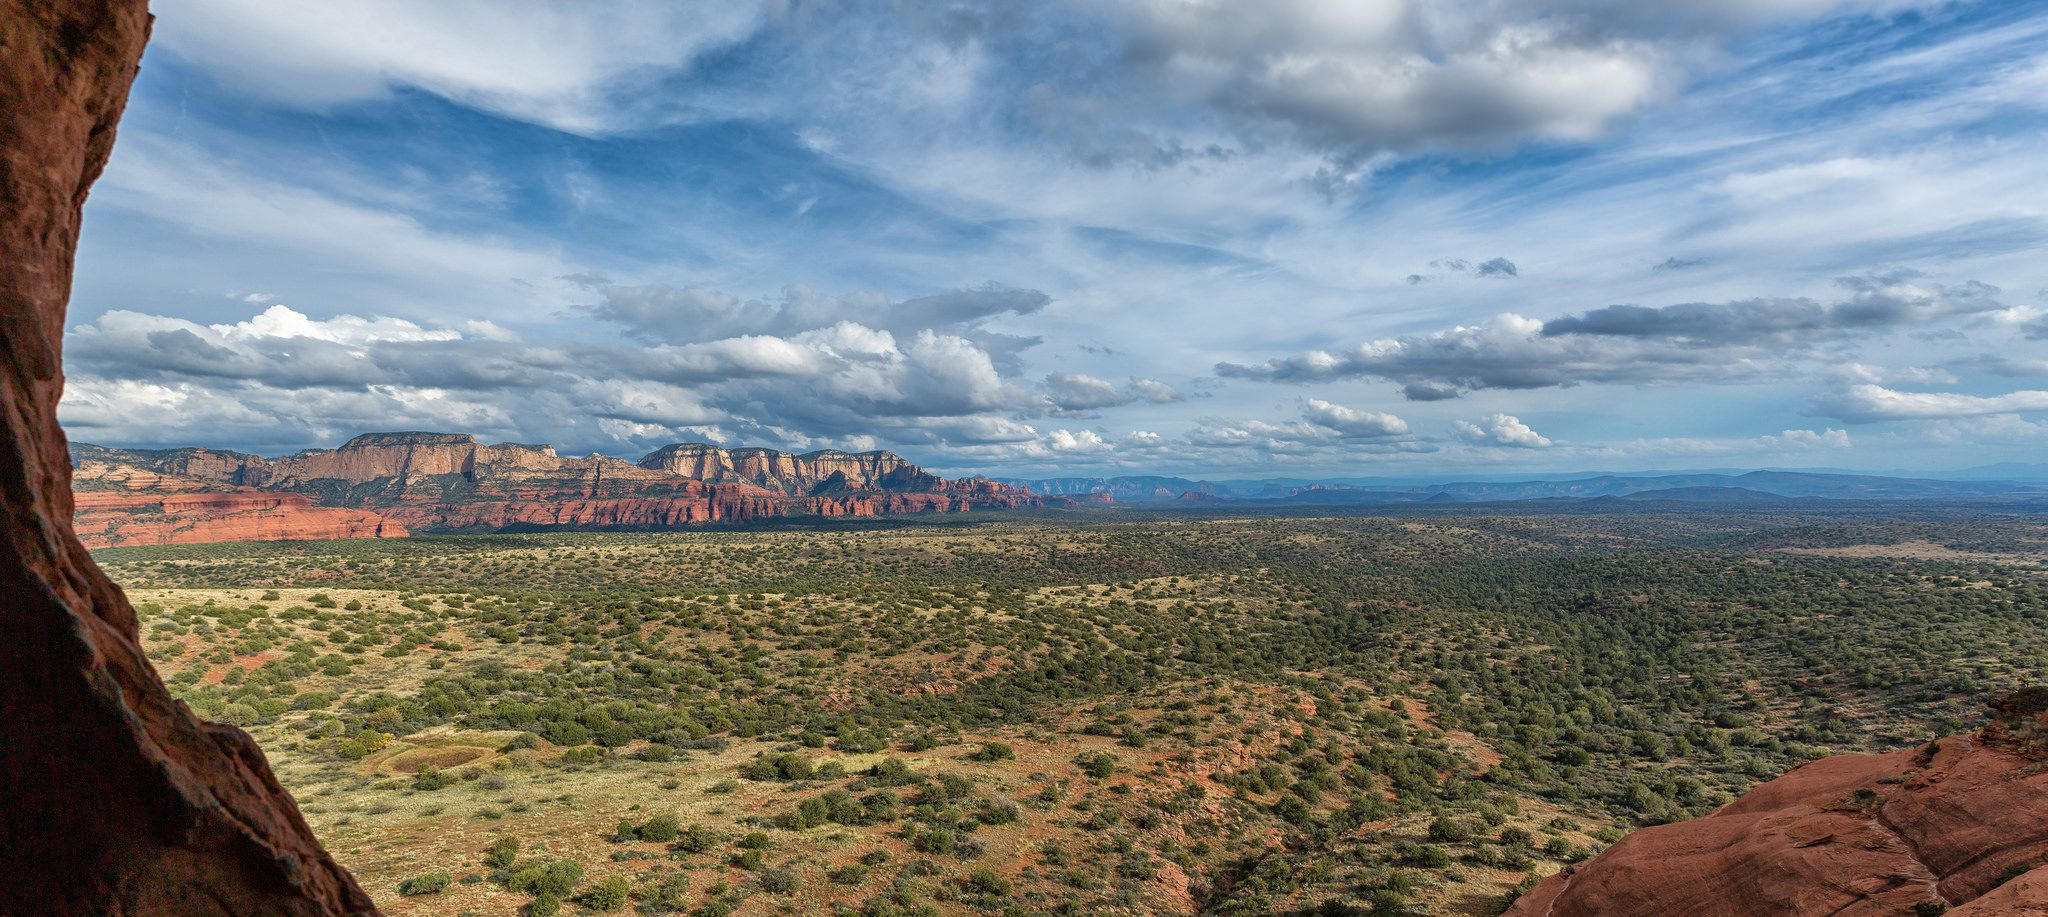 Sedona - You will never understand the allure of The West, until you go there.